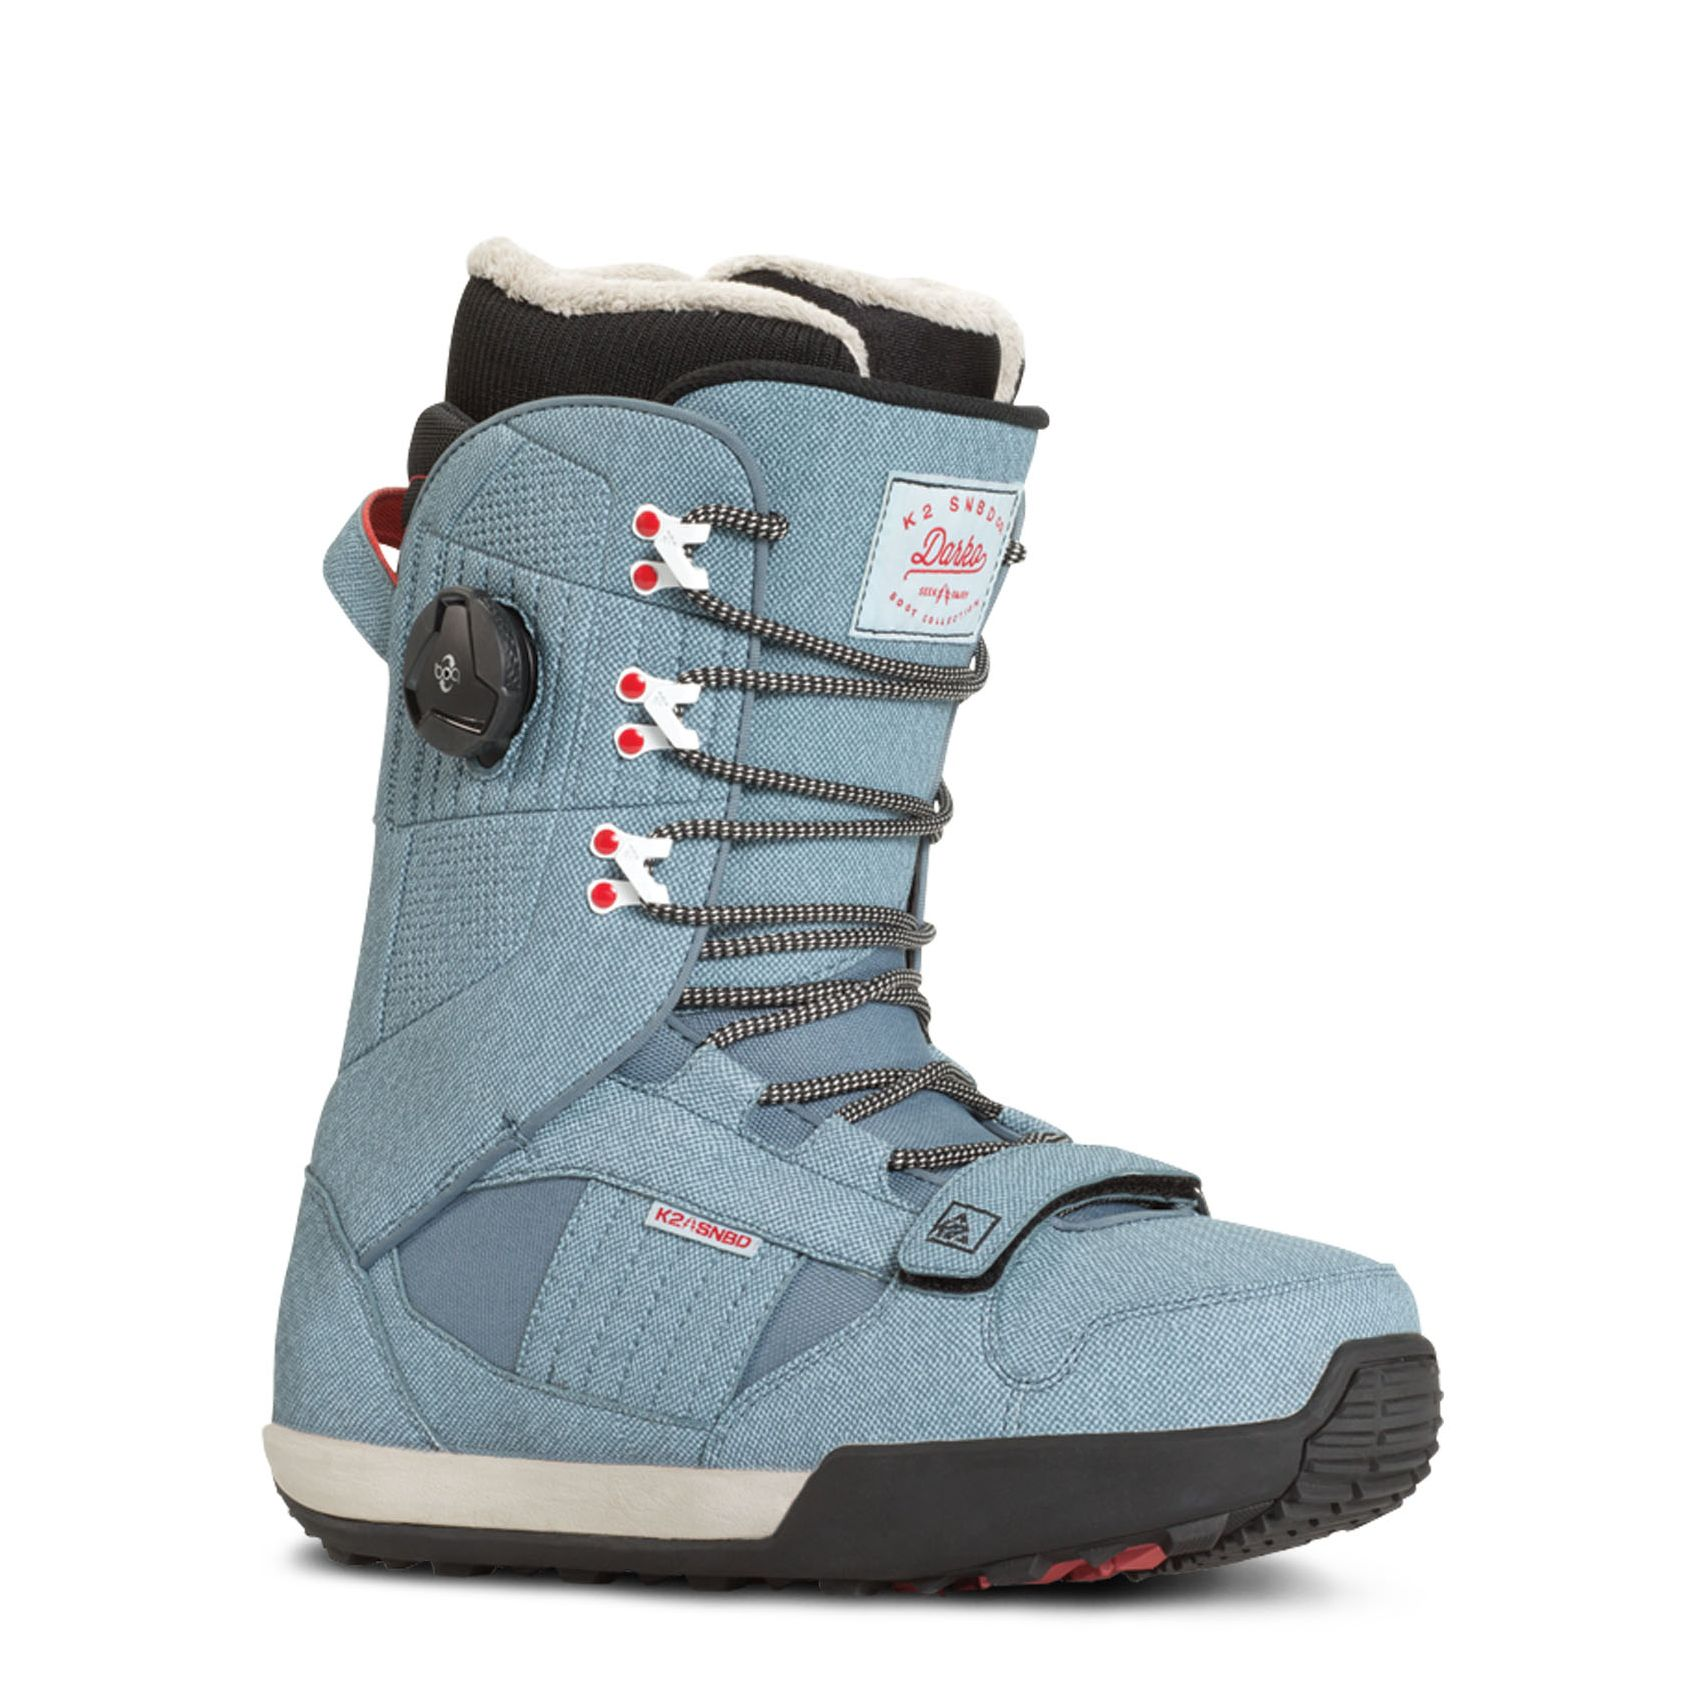 k2 snowboard boots darko mens boa freestyle all